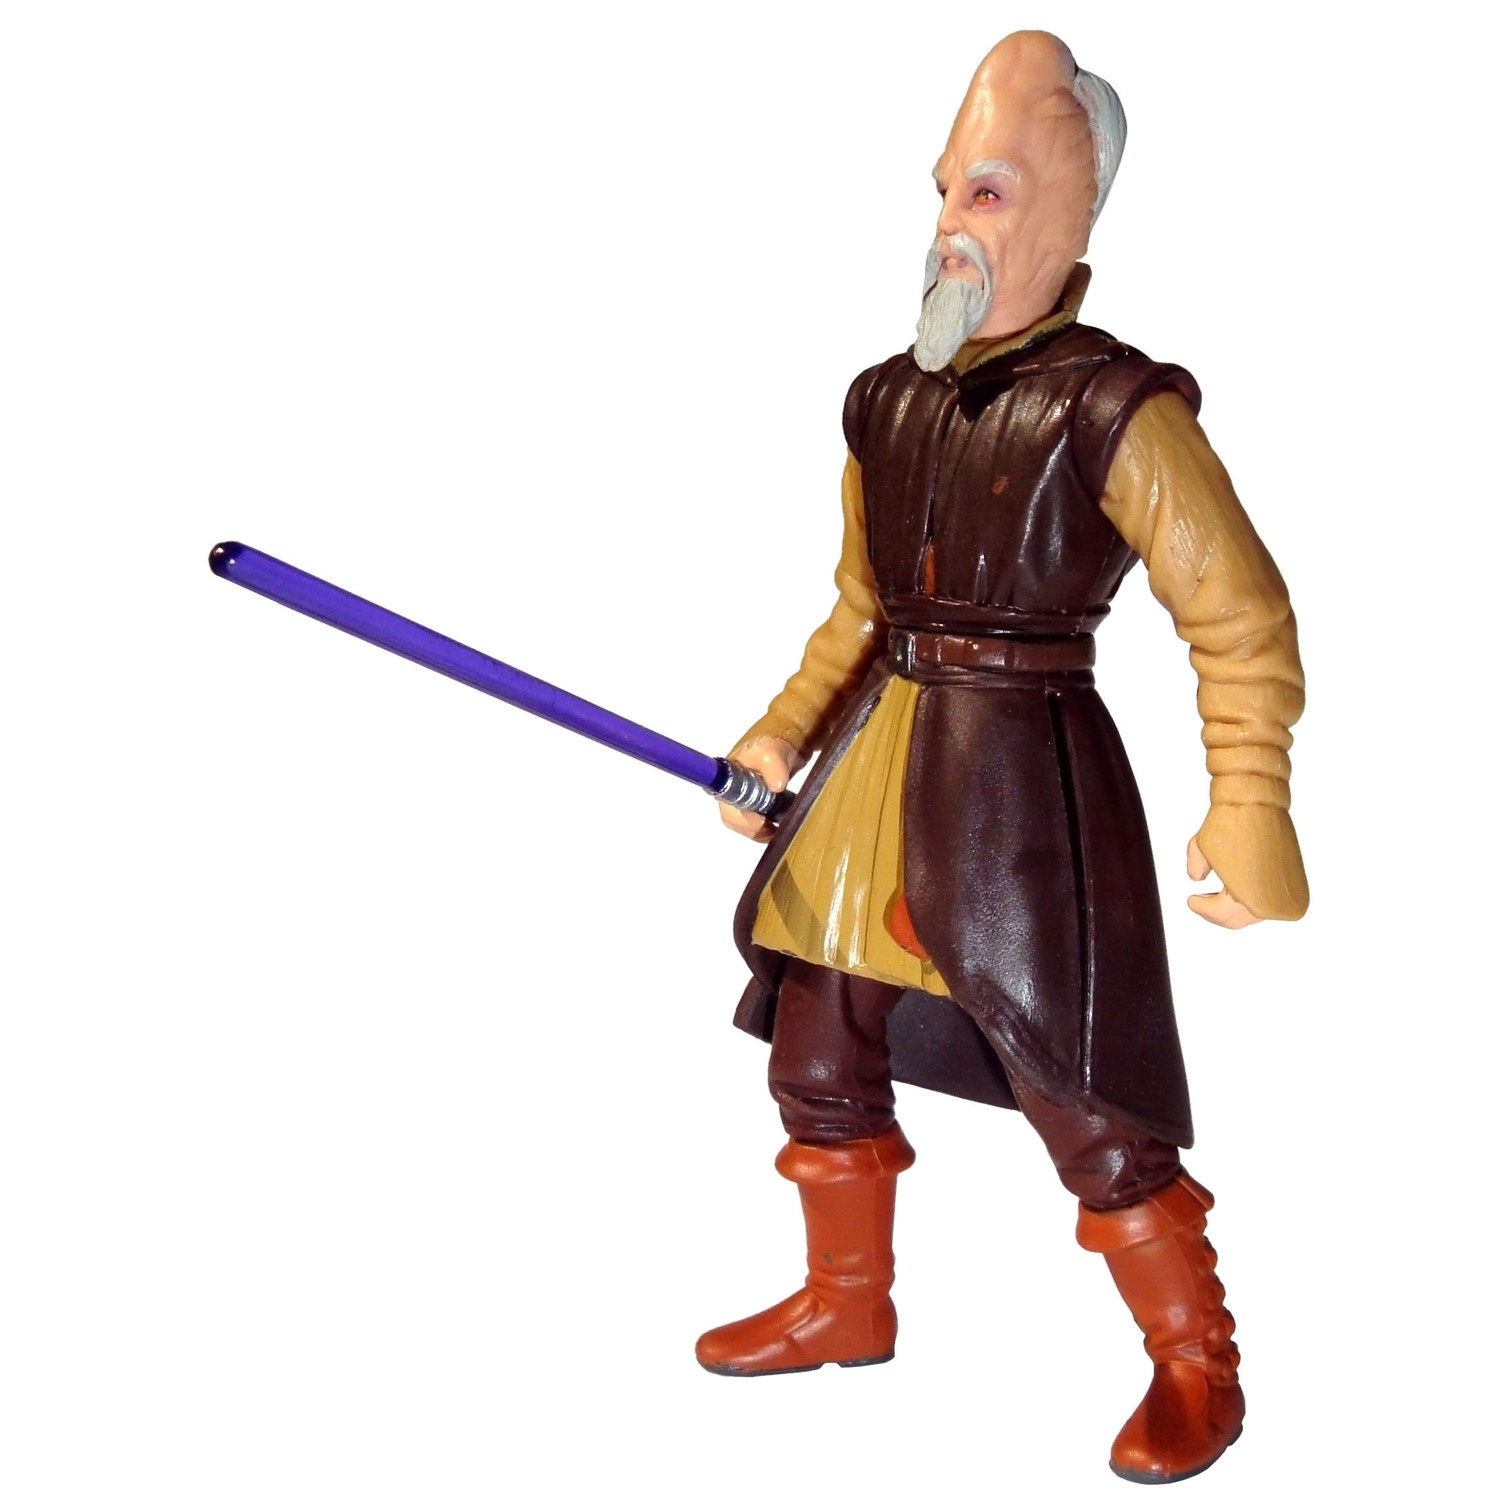 Star Wars Episode 1 Ki-Adi-Mundi Action Figure